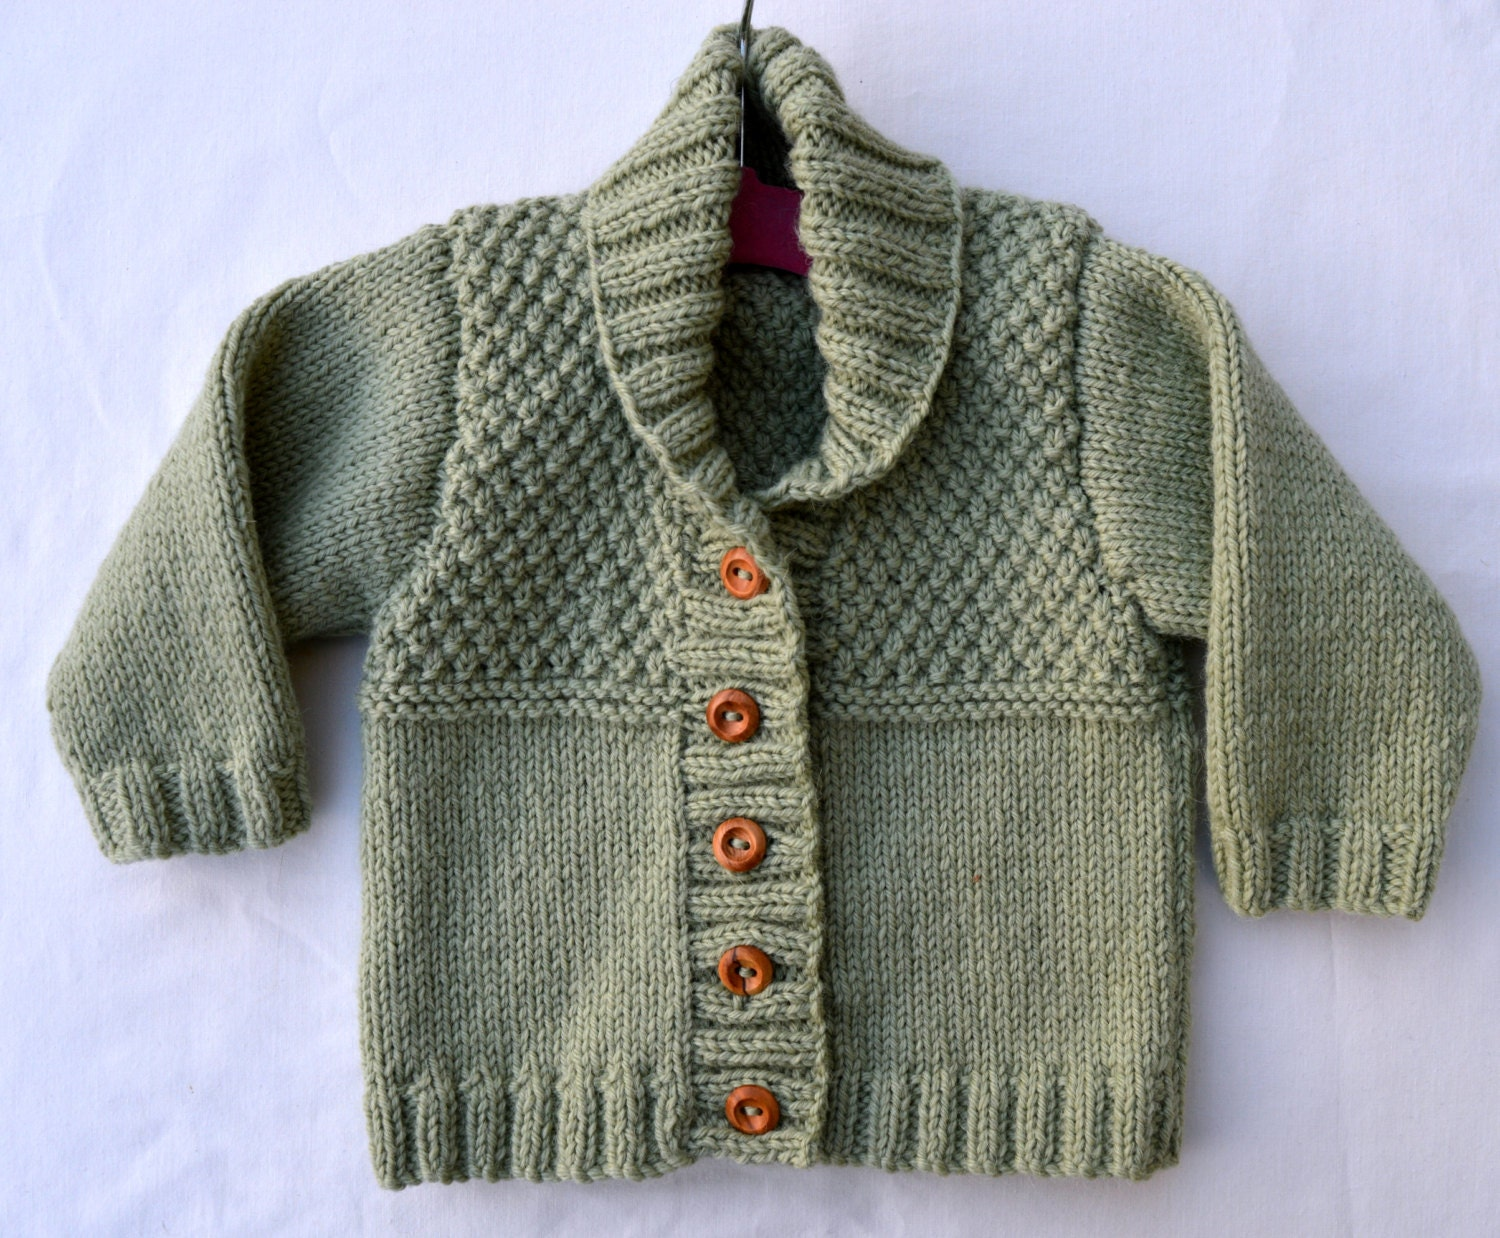 V-neck, classic baby boys cardigan is elegant, soft, classy and comfortable. SMILING PINKER Baby Boys Girls Cardigans V-Neck Solid Sweaters Cable Knitted Button Coats Outwear. by SMILING PINKER. $ - $ $ 13 $ 14 99 Prime. FREE Shipping on eligible orders. Some sizes/colors are Prime eligible.